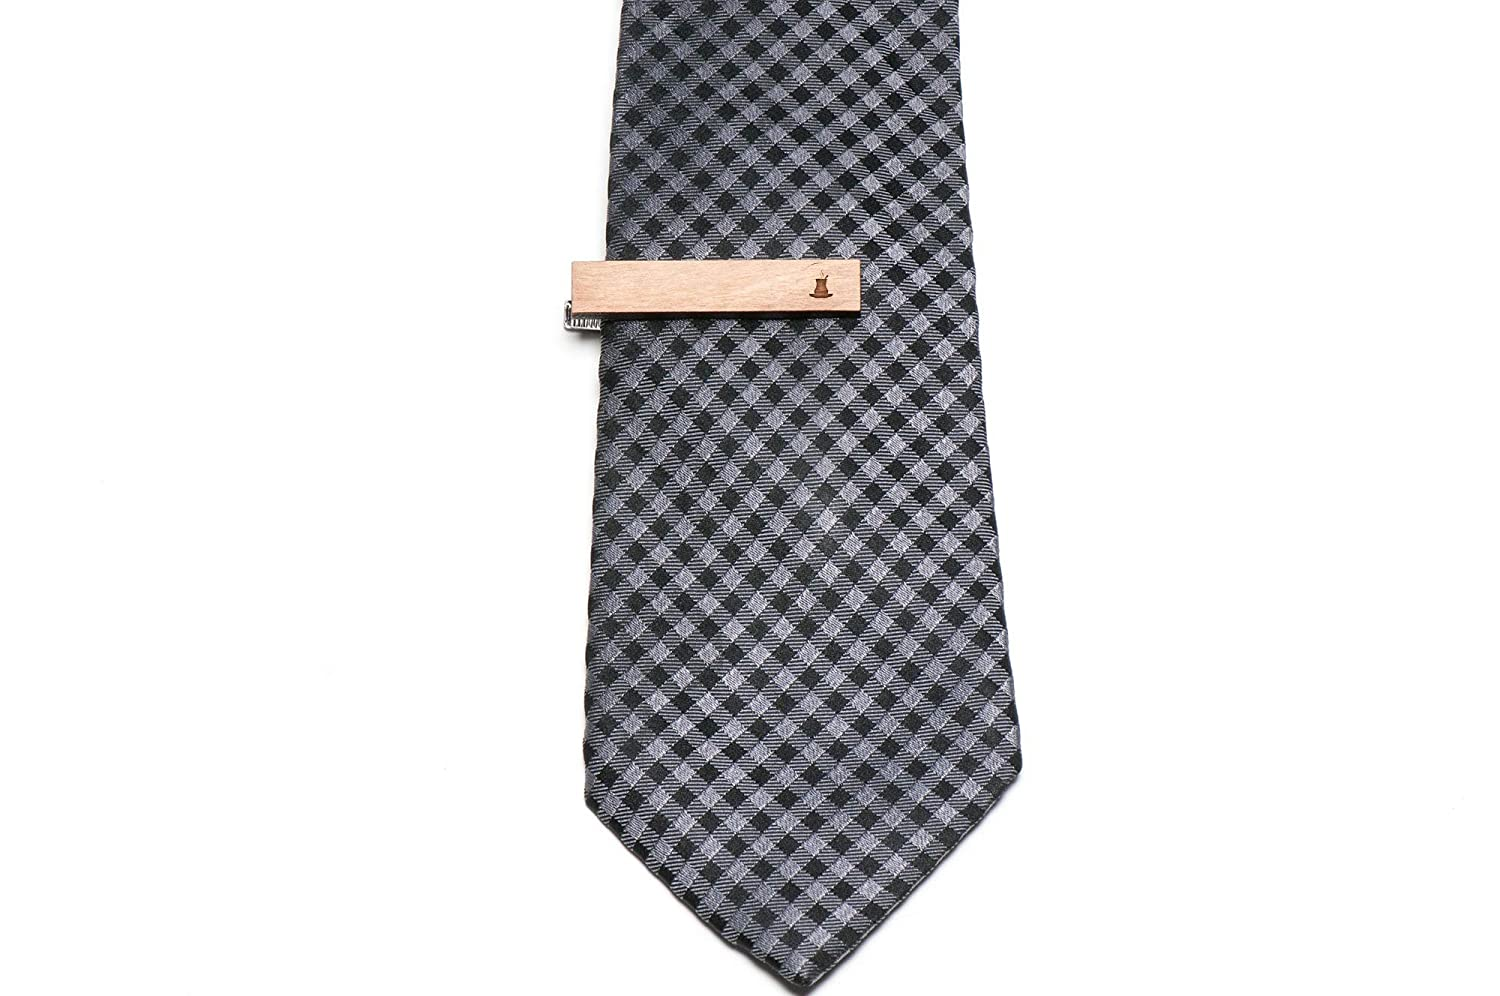 Wooden Accessories Company Wooden Tie Clips with Laser Engraved Turkish Tea Design Cherry Wood Tie Bar Engraved in The USA